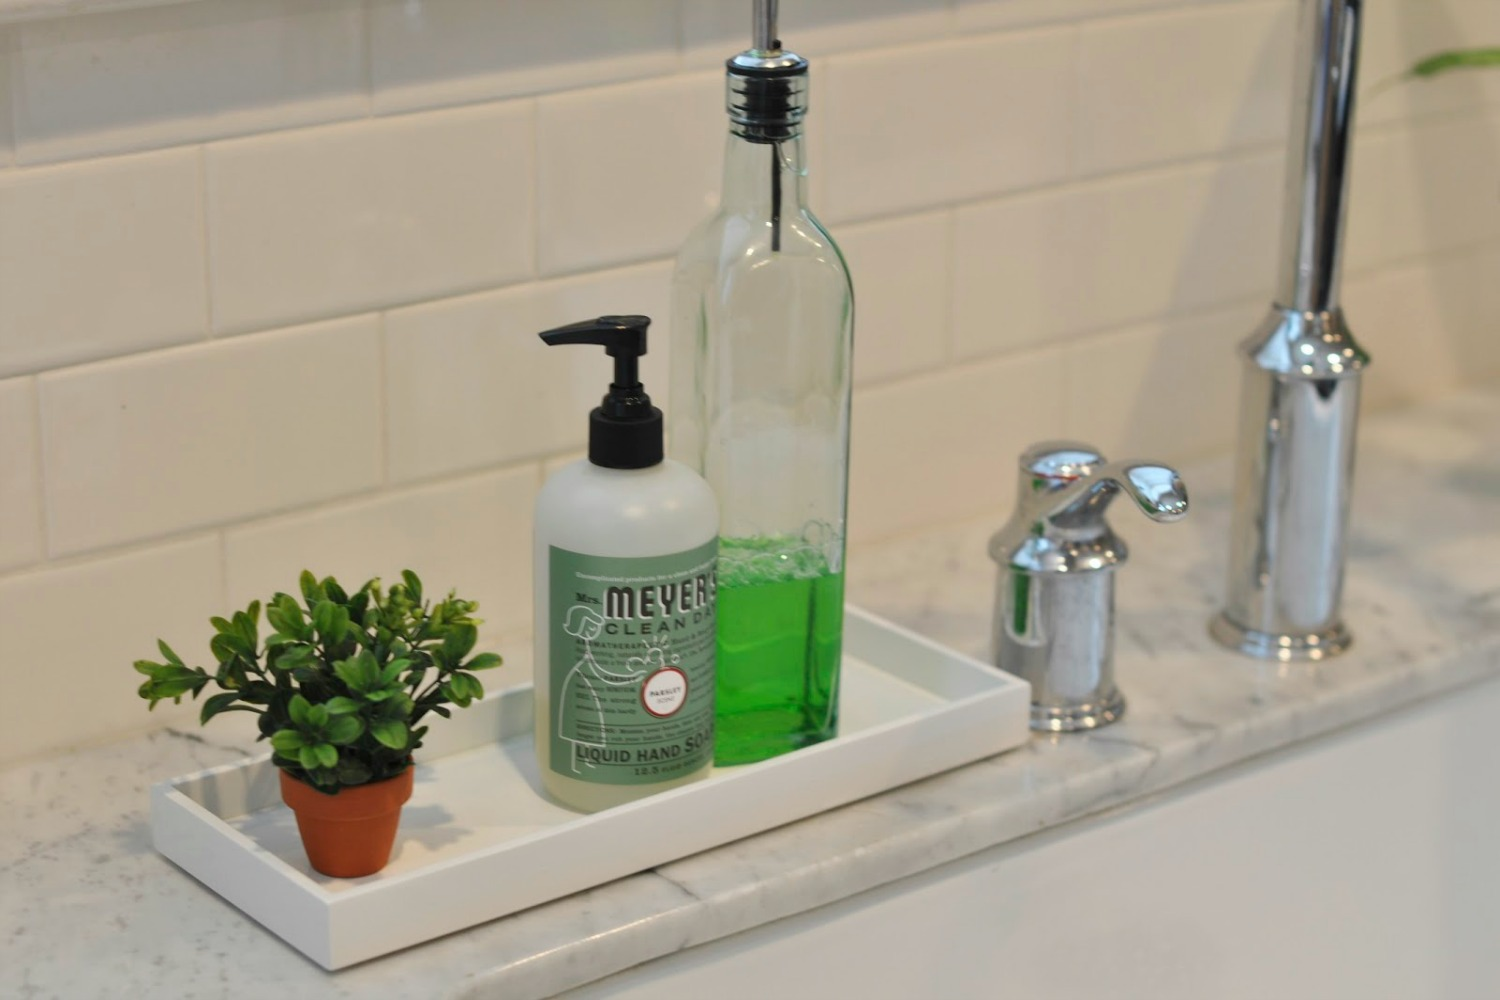 15 Inspired Ways To Store Your Cleaning Products